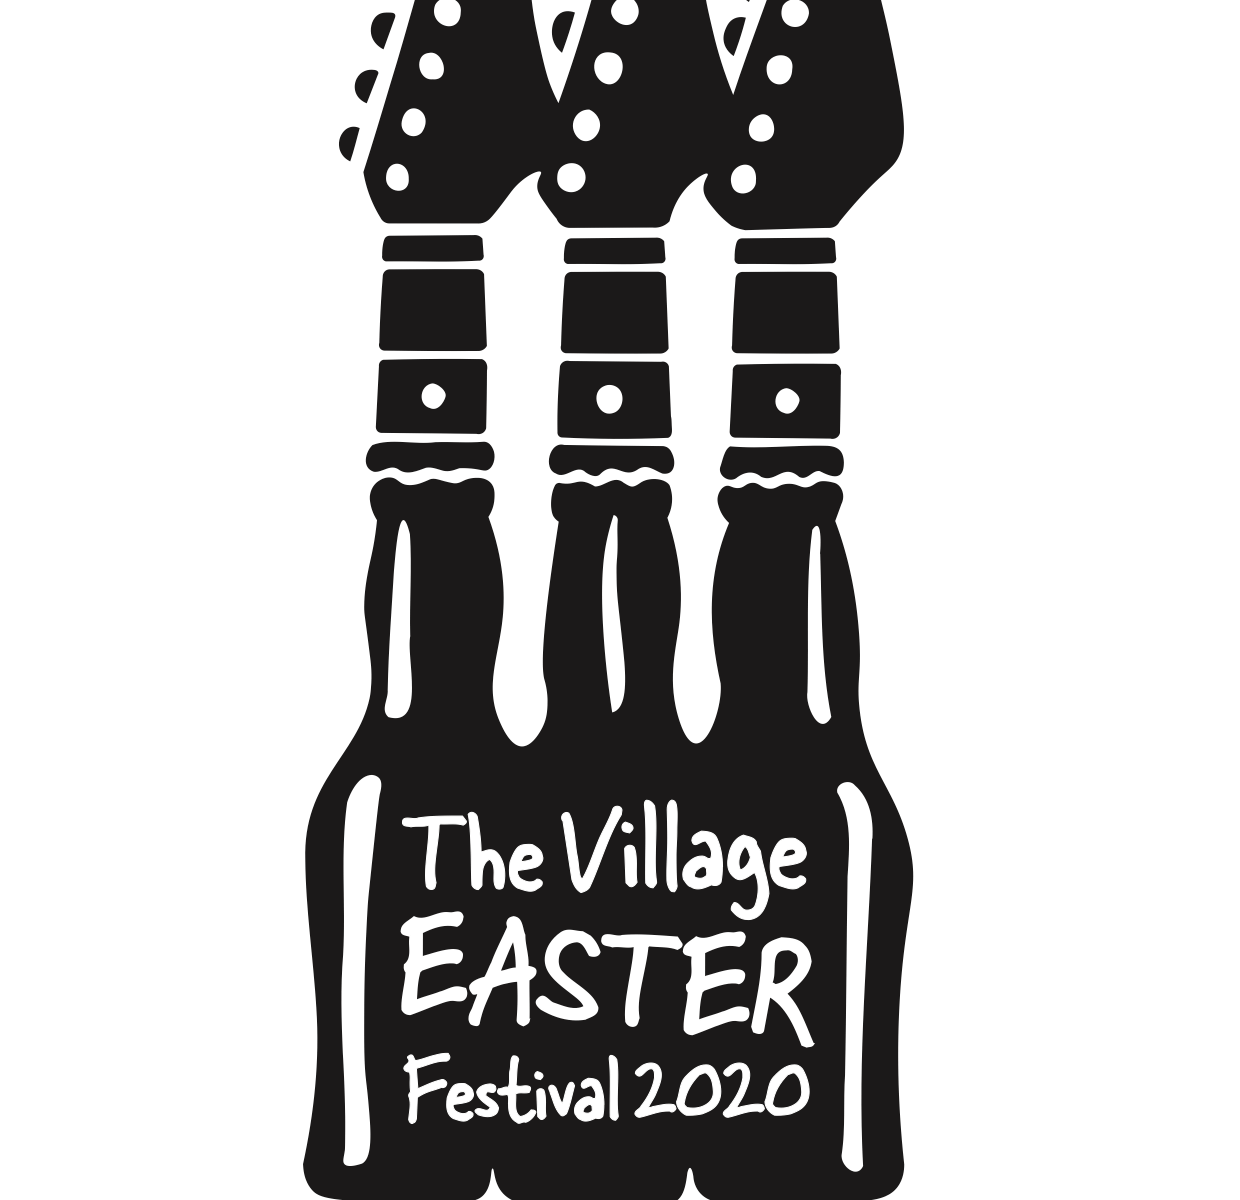 The Village Easter Festival 2020